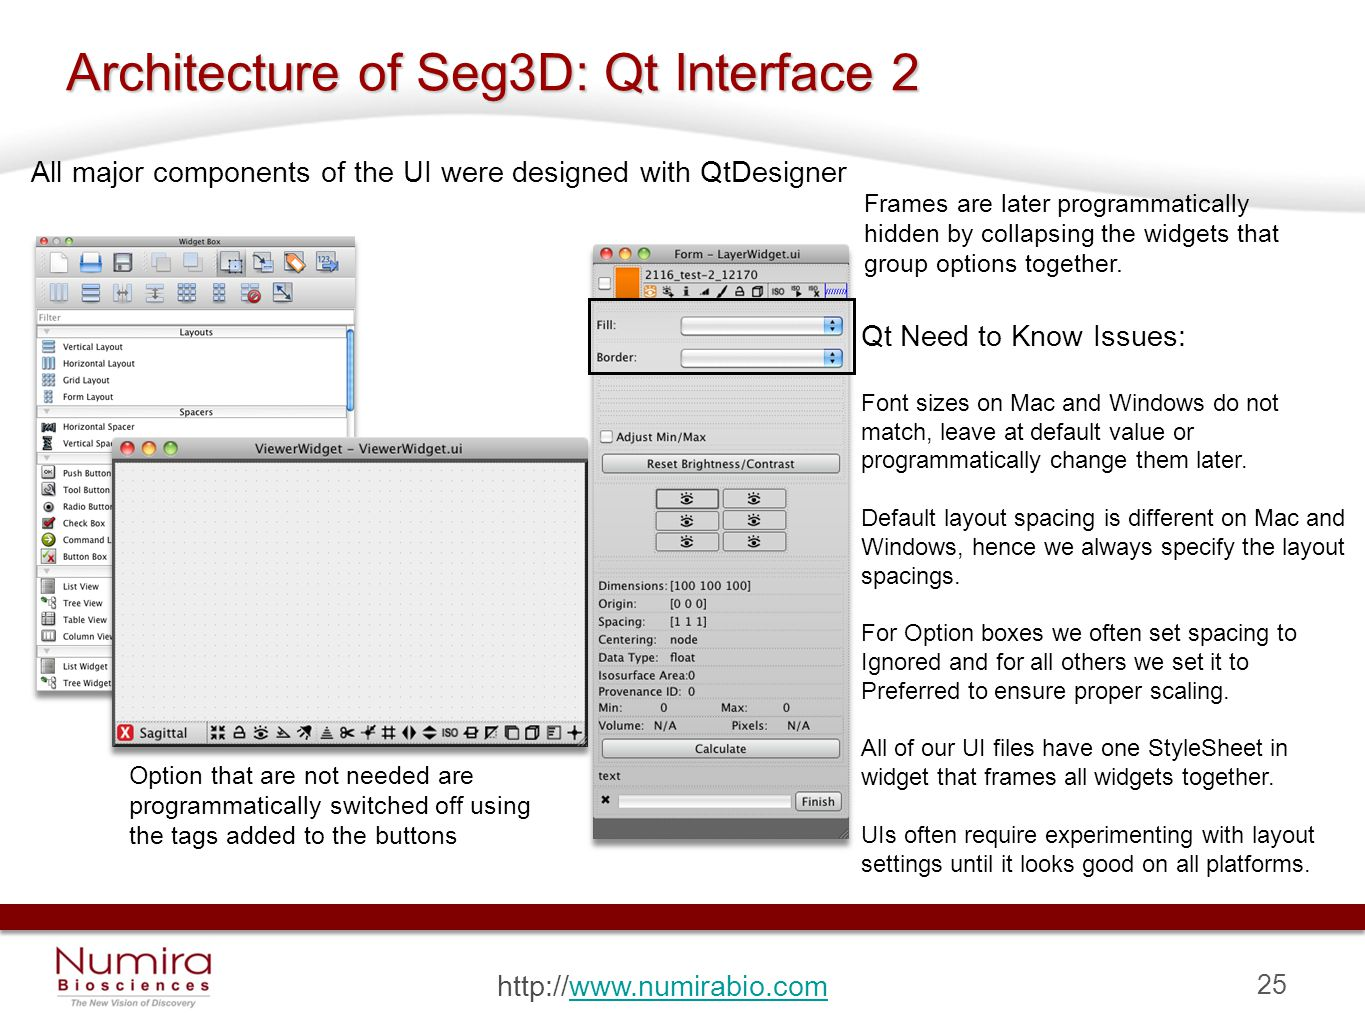 25 http://www.numirabio.comwww.numirabio.com Architecture of Seg3D: Qt Interface 2 All major components of the UI were designed with QtDesigner Frames are later programmatically hidden by collapsing the widgets that group options together.